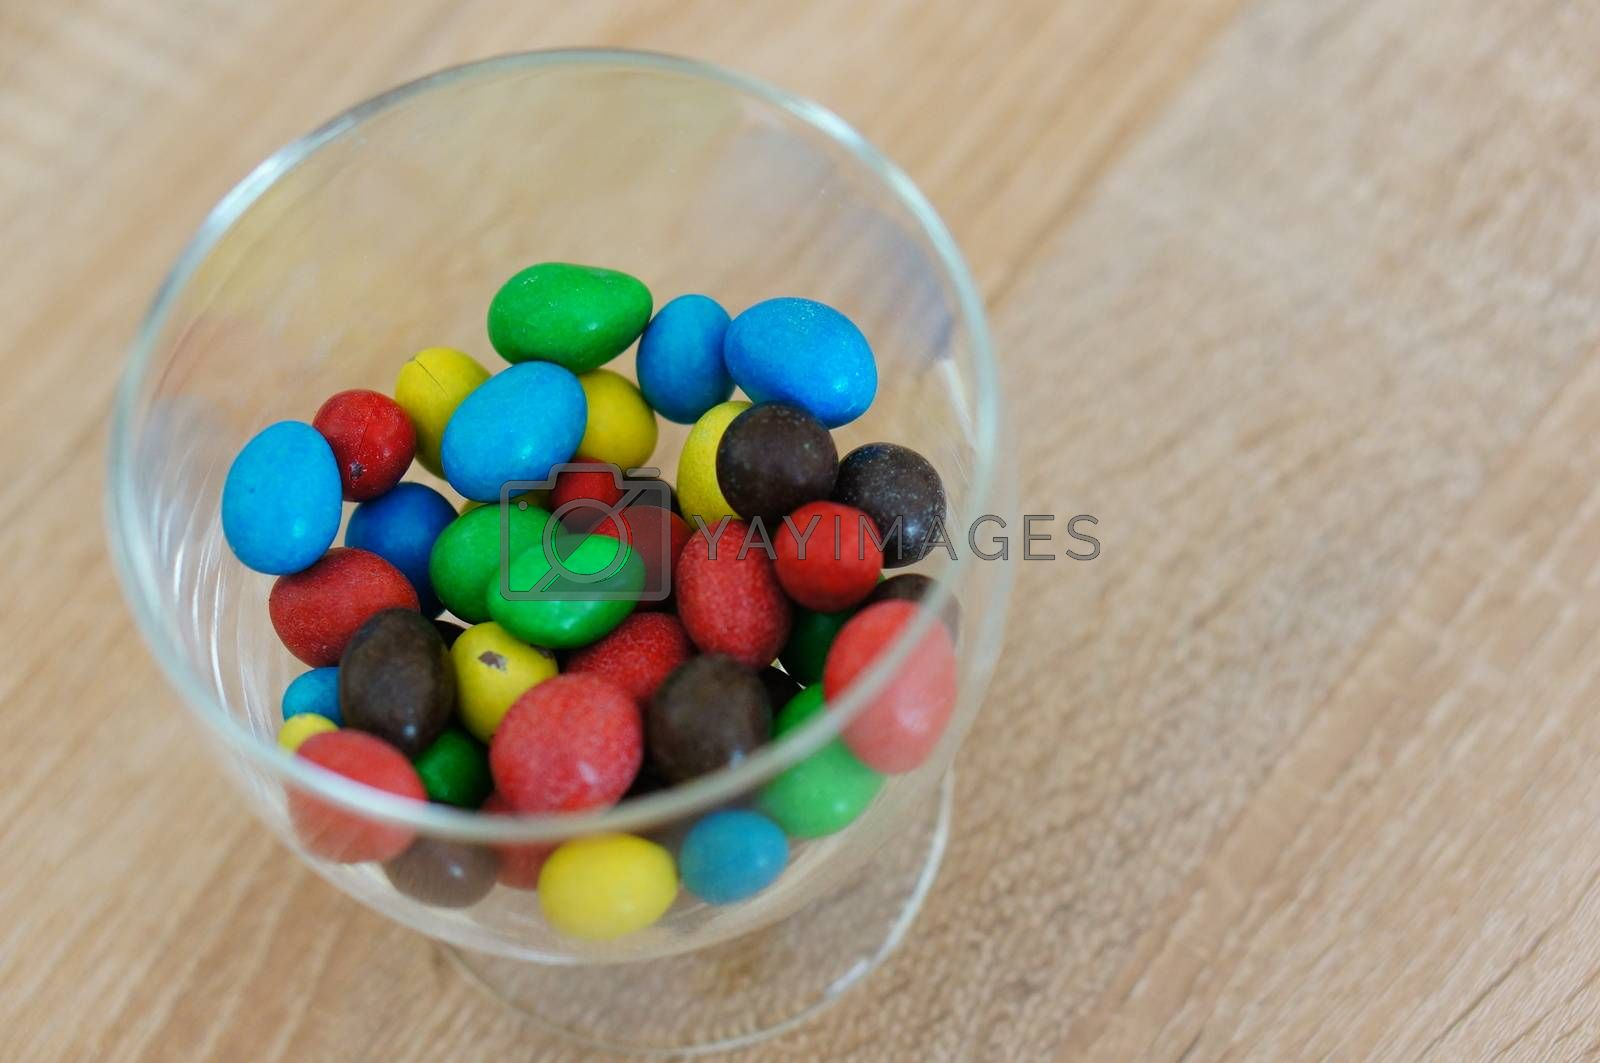 Colorful chocolate peanuts in glass